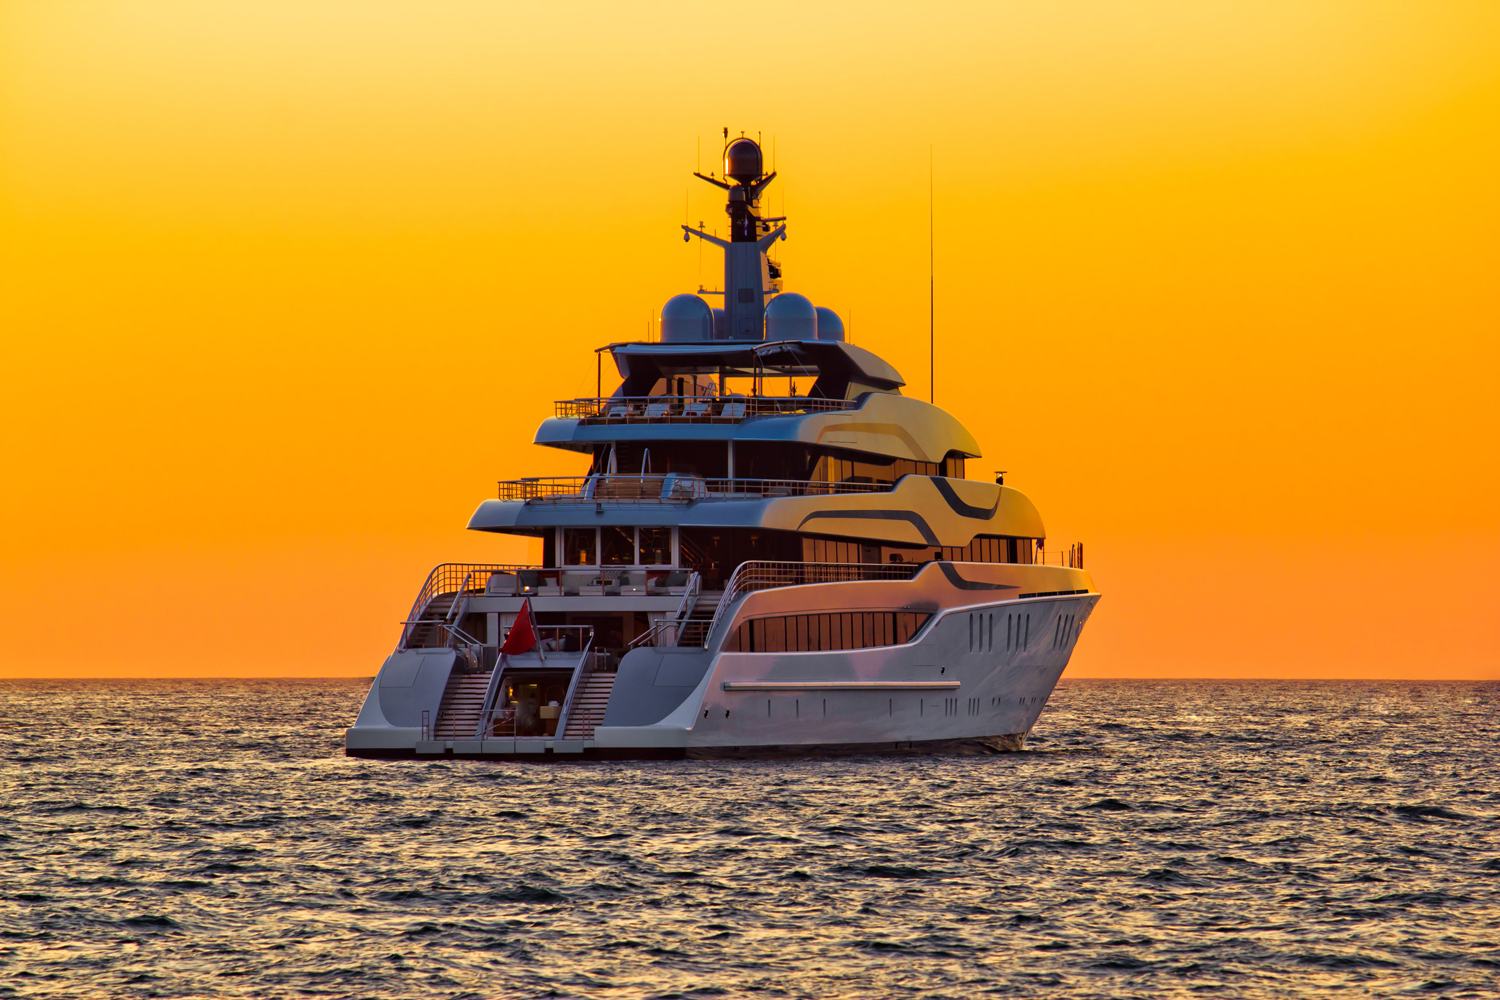 Luxury yacht network security might matter to you